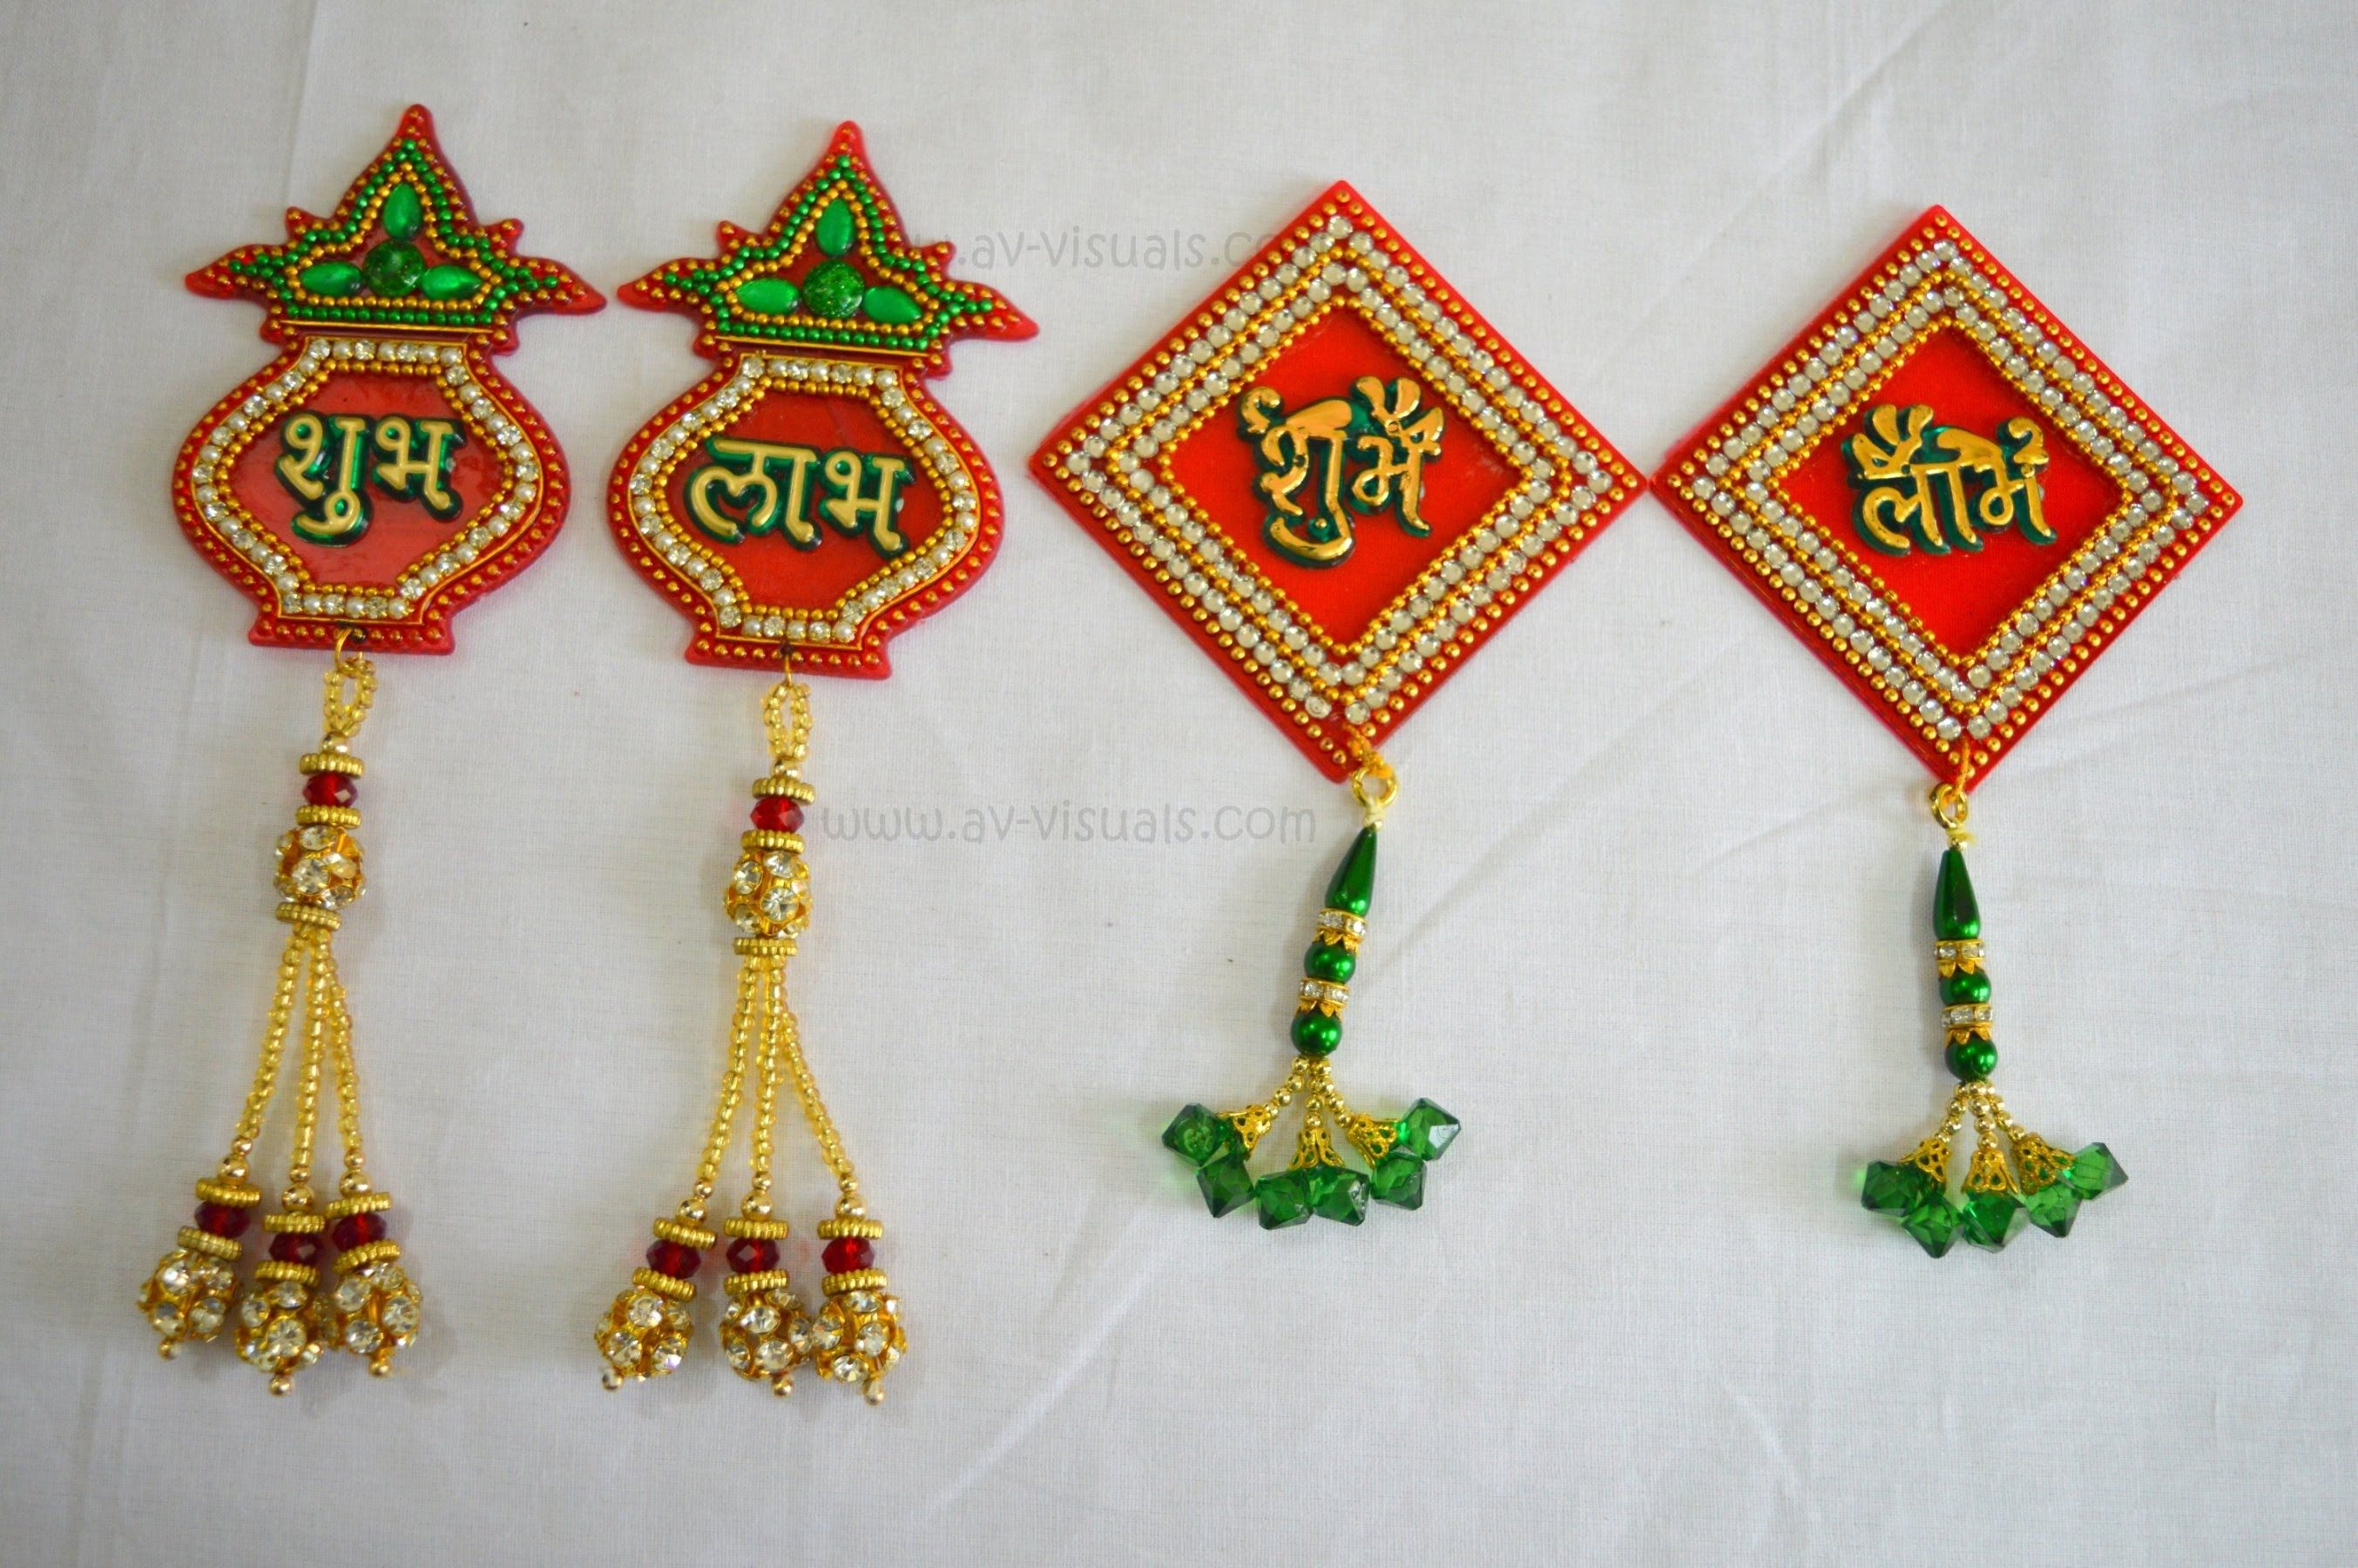 Diy Diwali Shubh Labh Door Hanging Wall Decor Making Tutorial Av Visuals Tutorials